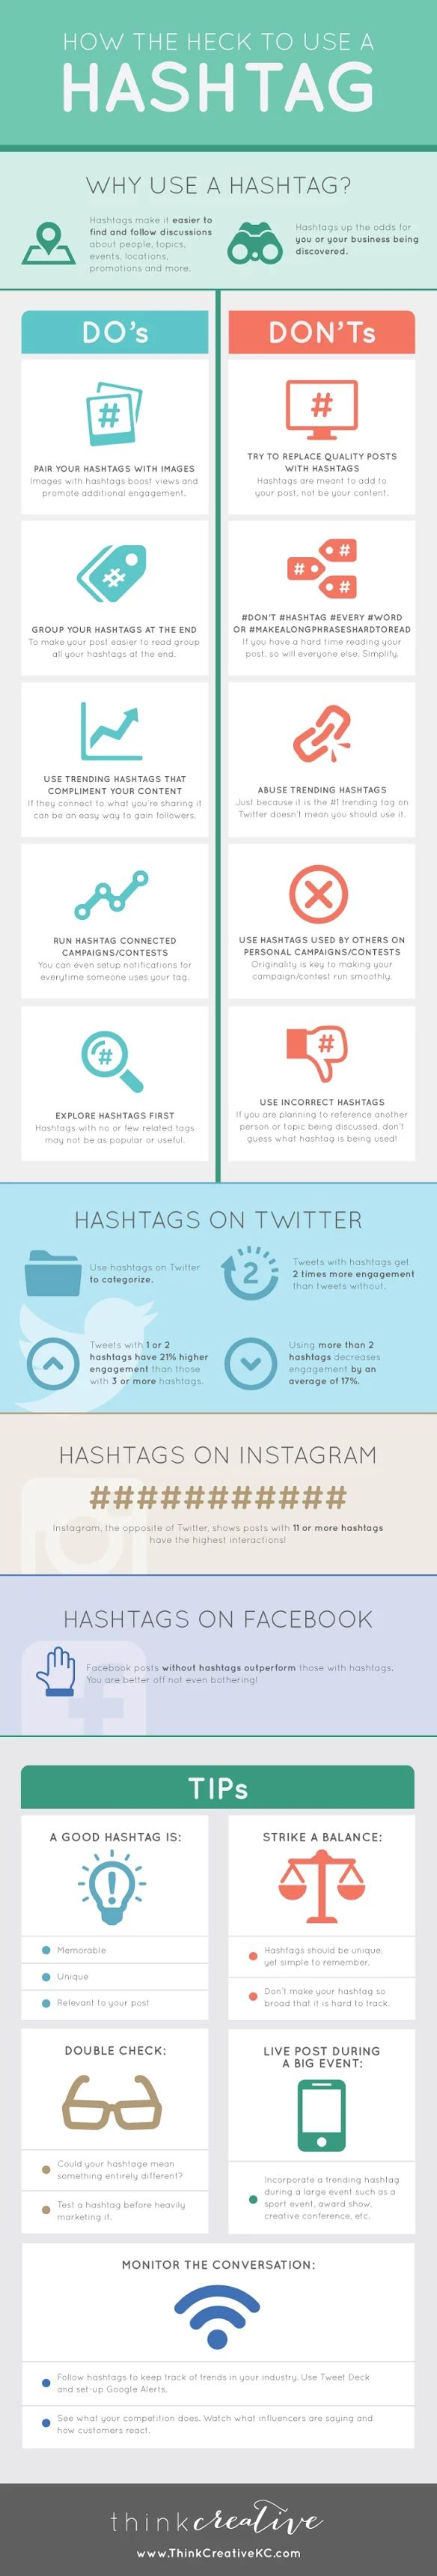 Inforgraphic: How the heck to use a HashtagTo get more good insights for your small business visit our blog: http://bloggerkhan.com